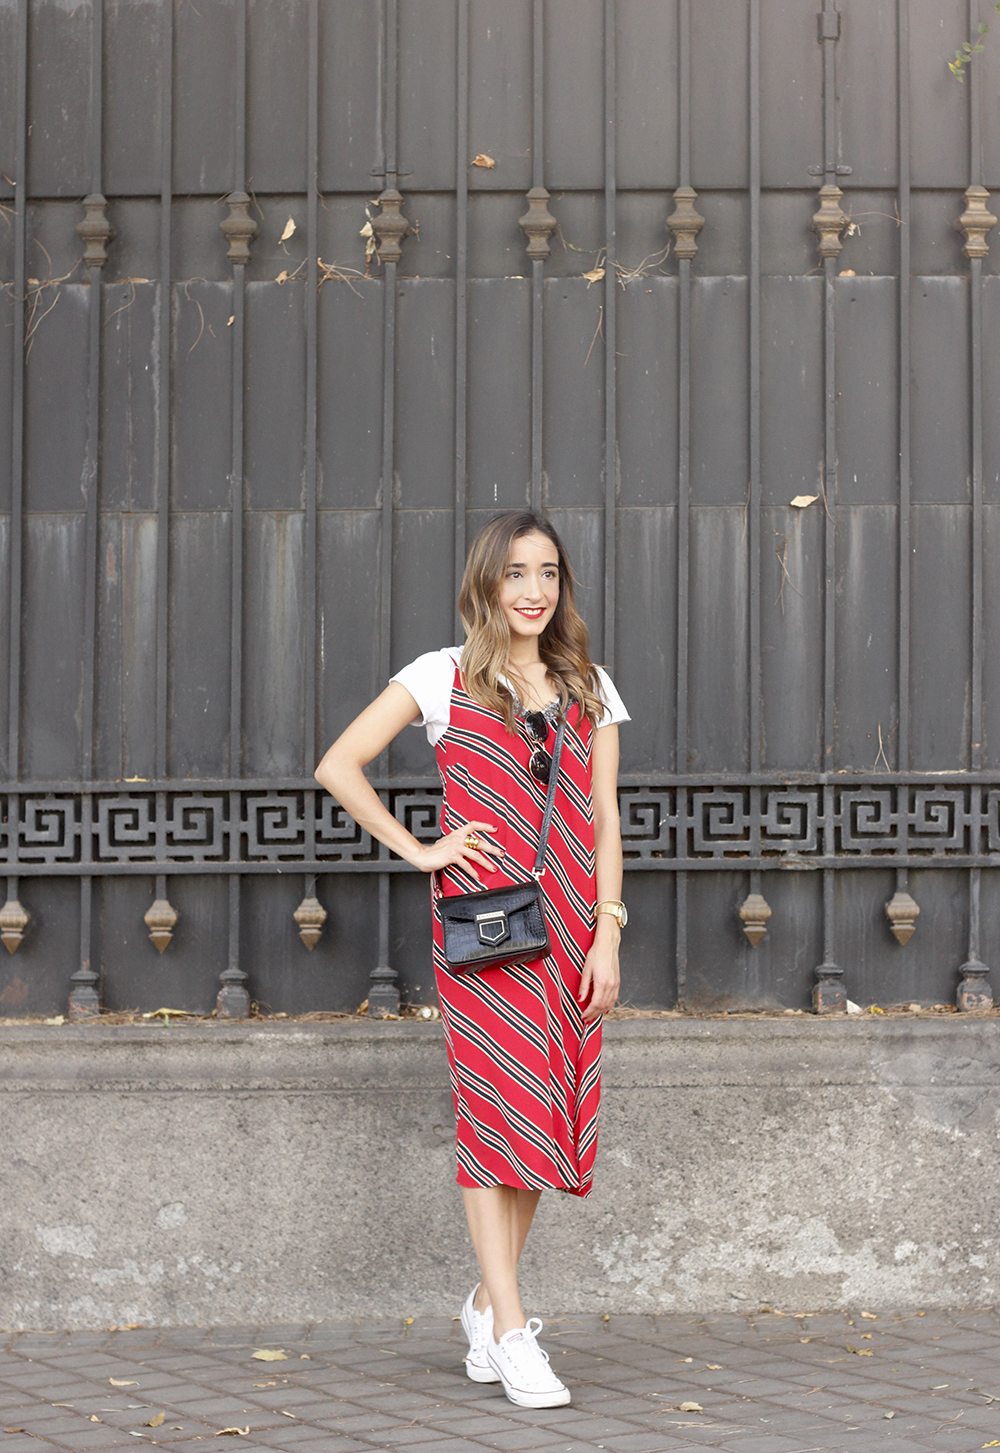 Striped midi dress T-shirt givenchy dress converse outfit trend style fashion06